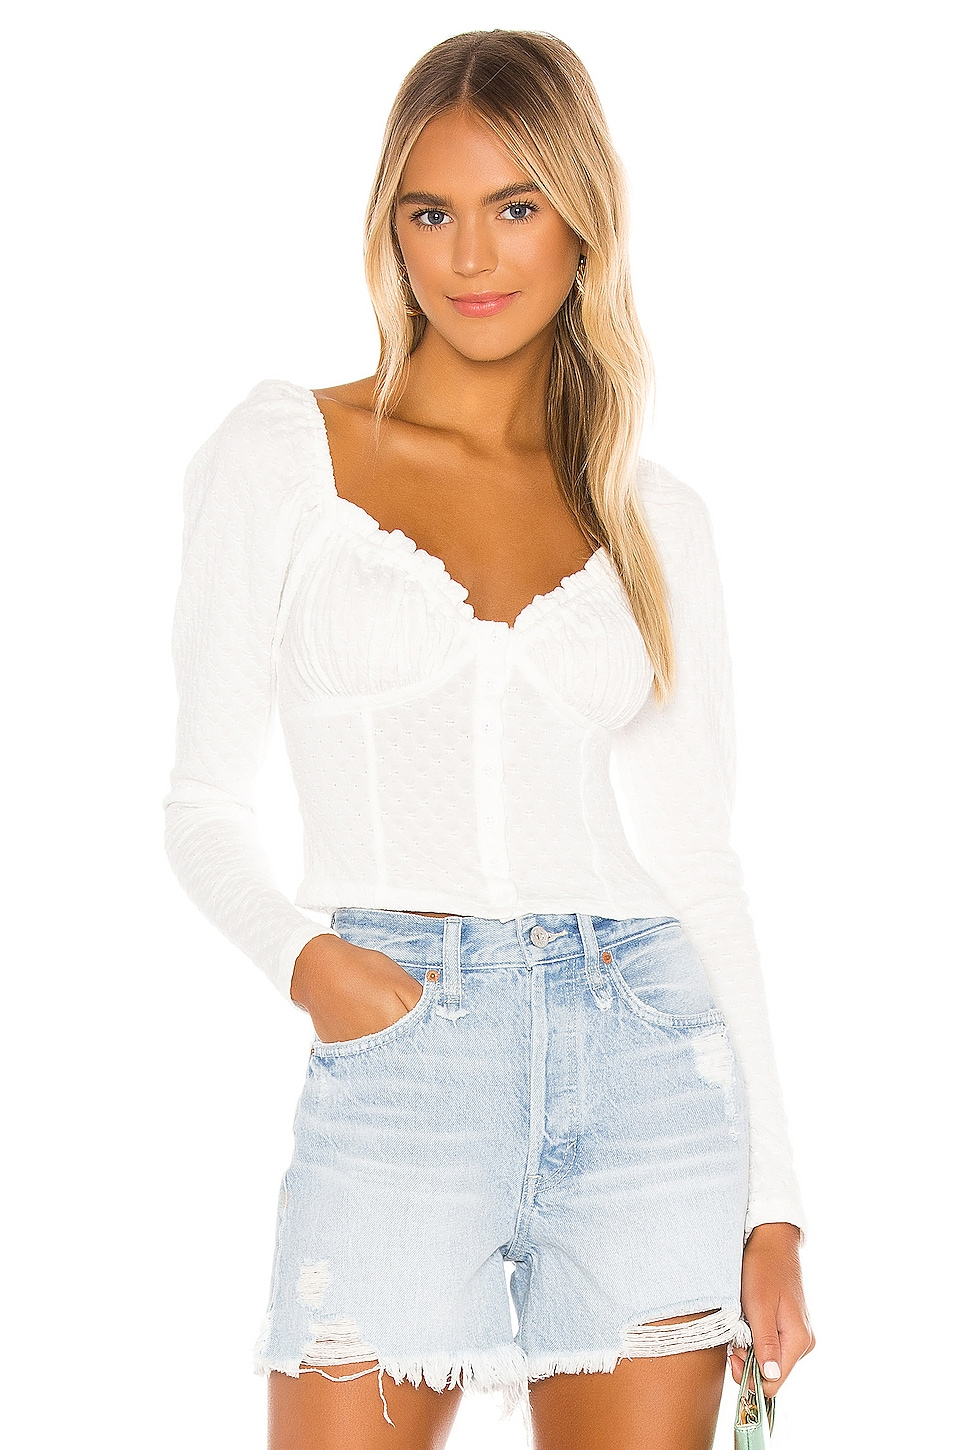 Ladybug Long Sleeve Top             Free People                                                                                                       CA$ 96.68 4